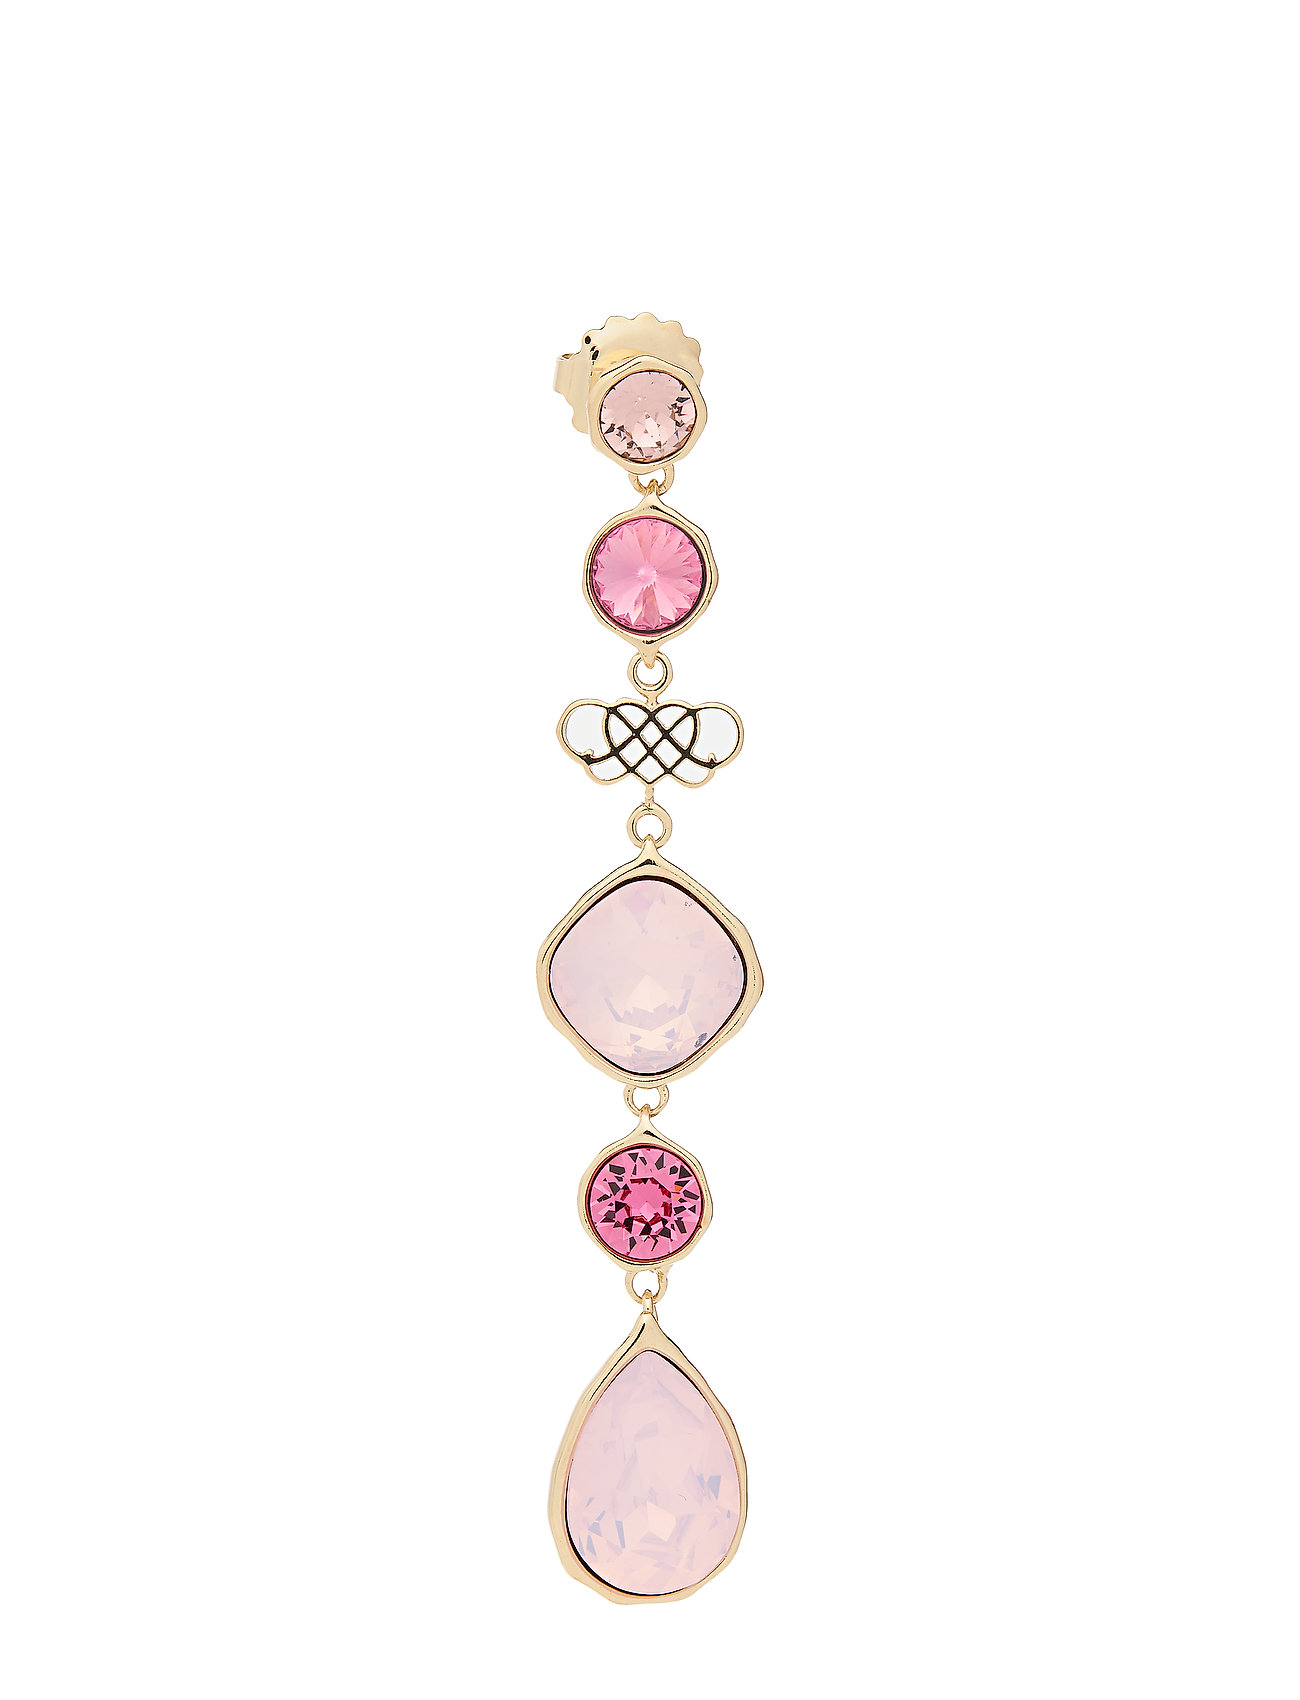 Image of Lucy Earrings - Rose Ørestickere Smykker Lyserød LILY AND ROSE (3364041713)